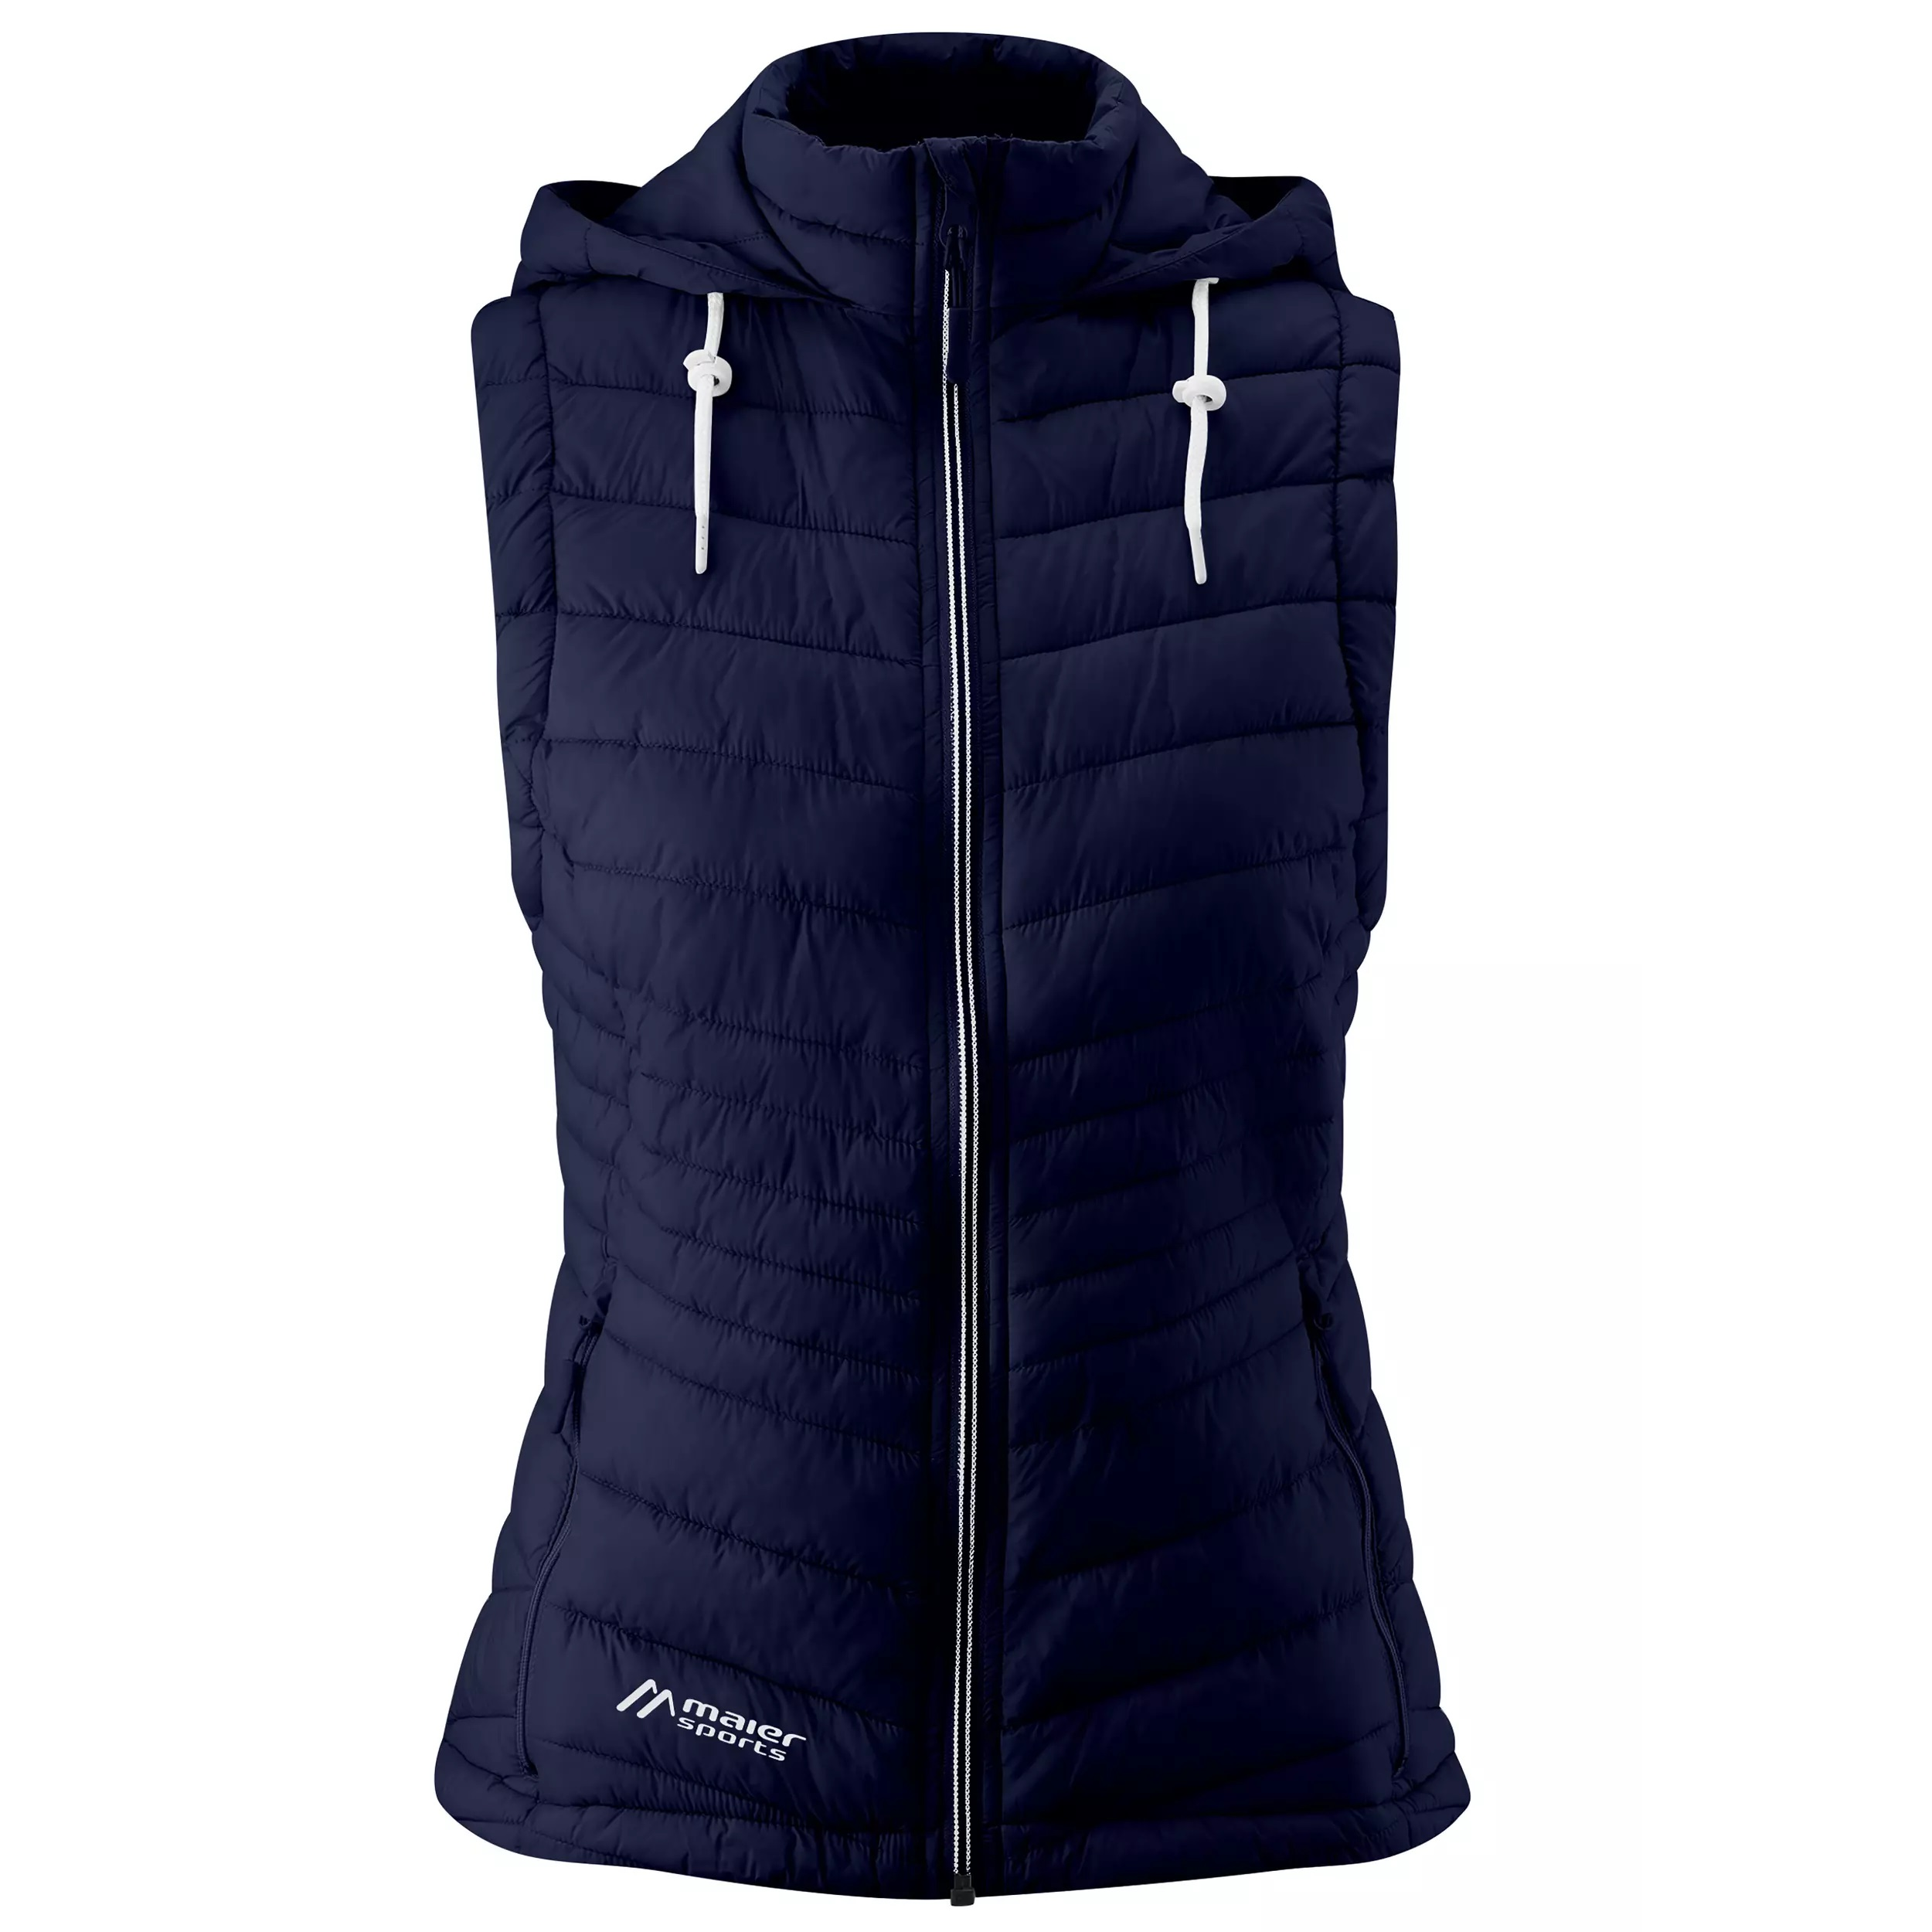 Maier Sports Damen Notos 2.0 Weste